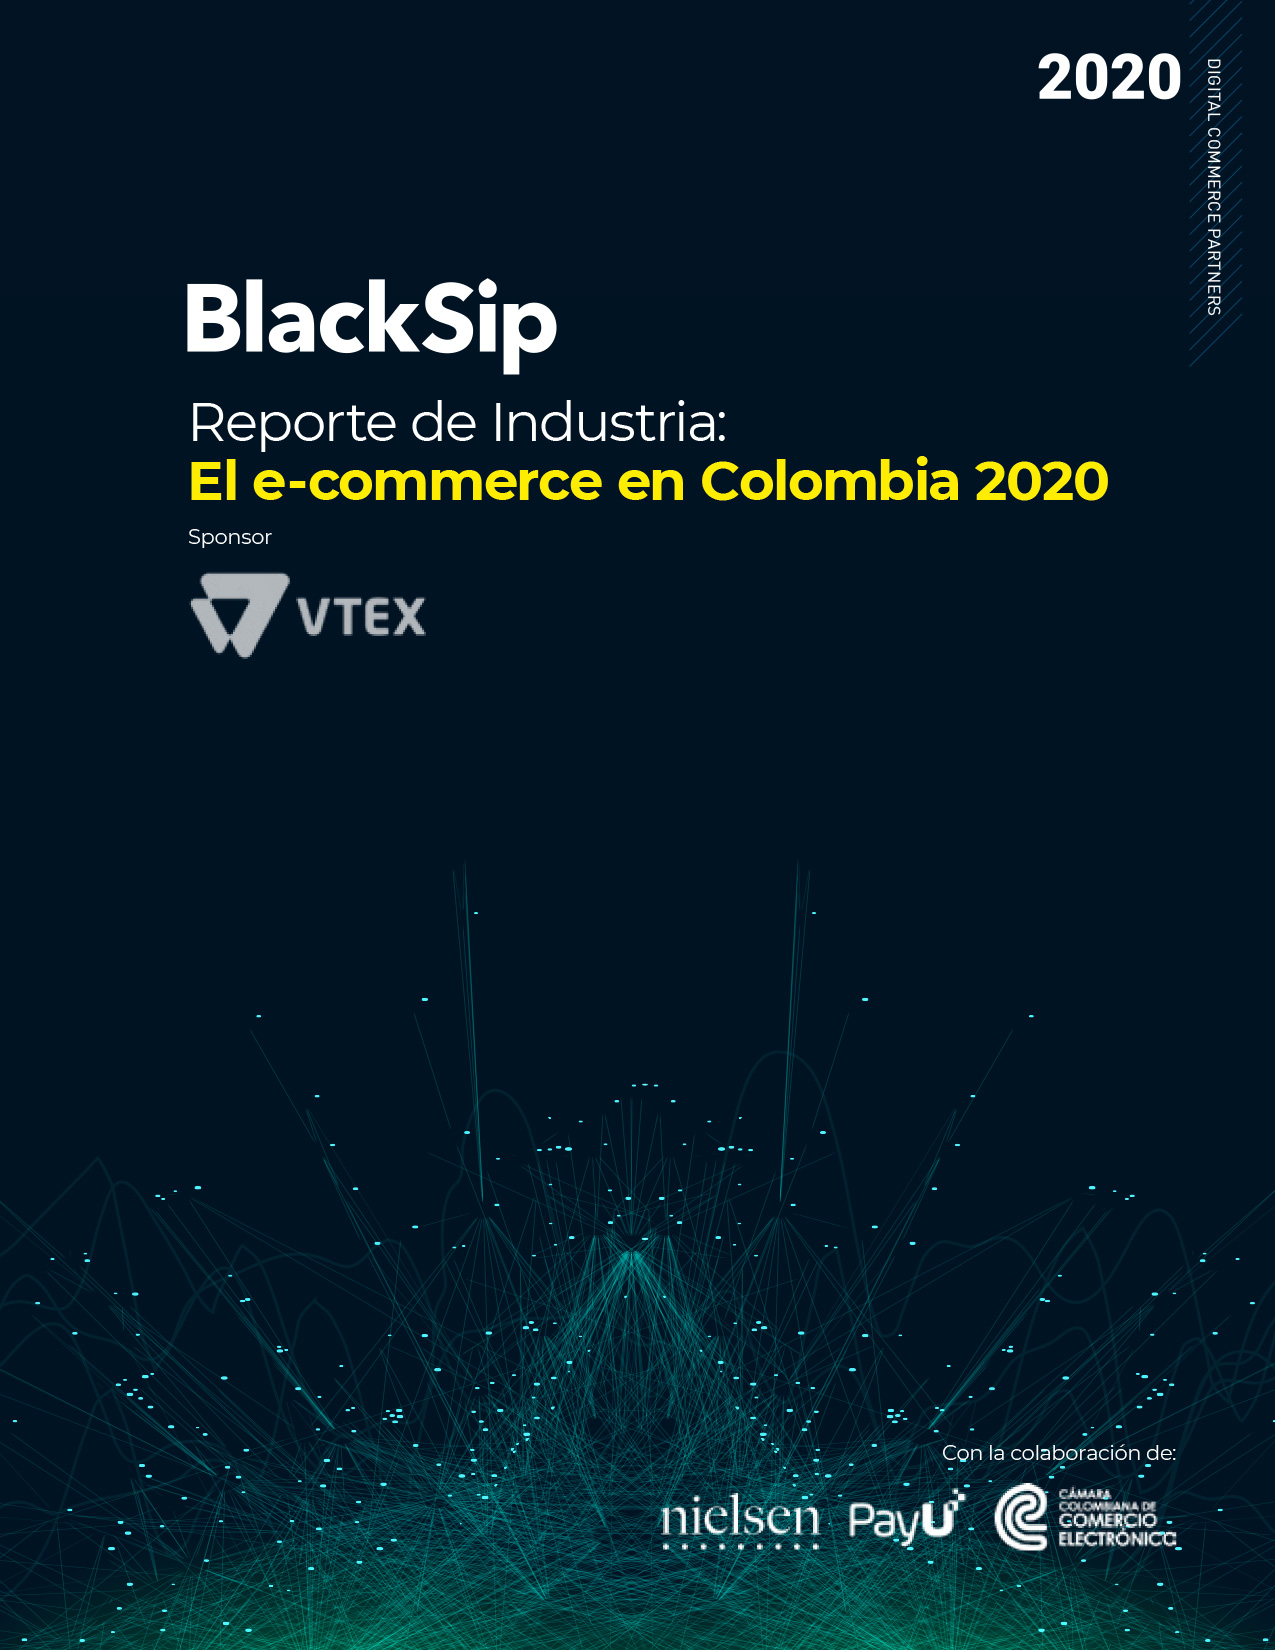 Reporte de Industria: el e-commerce en Colombia 2020